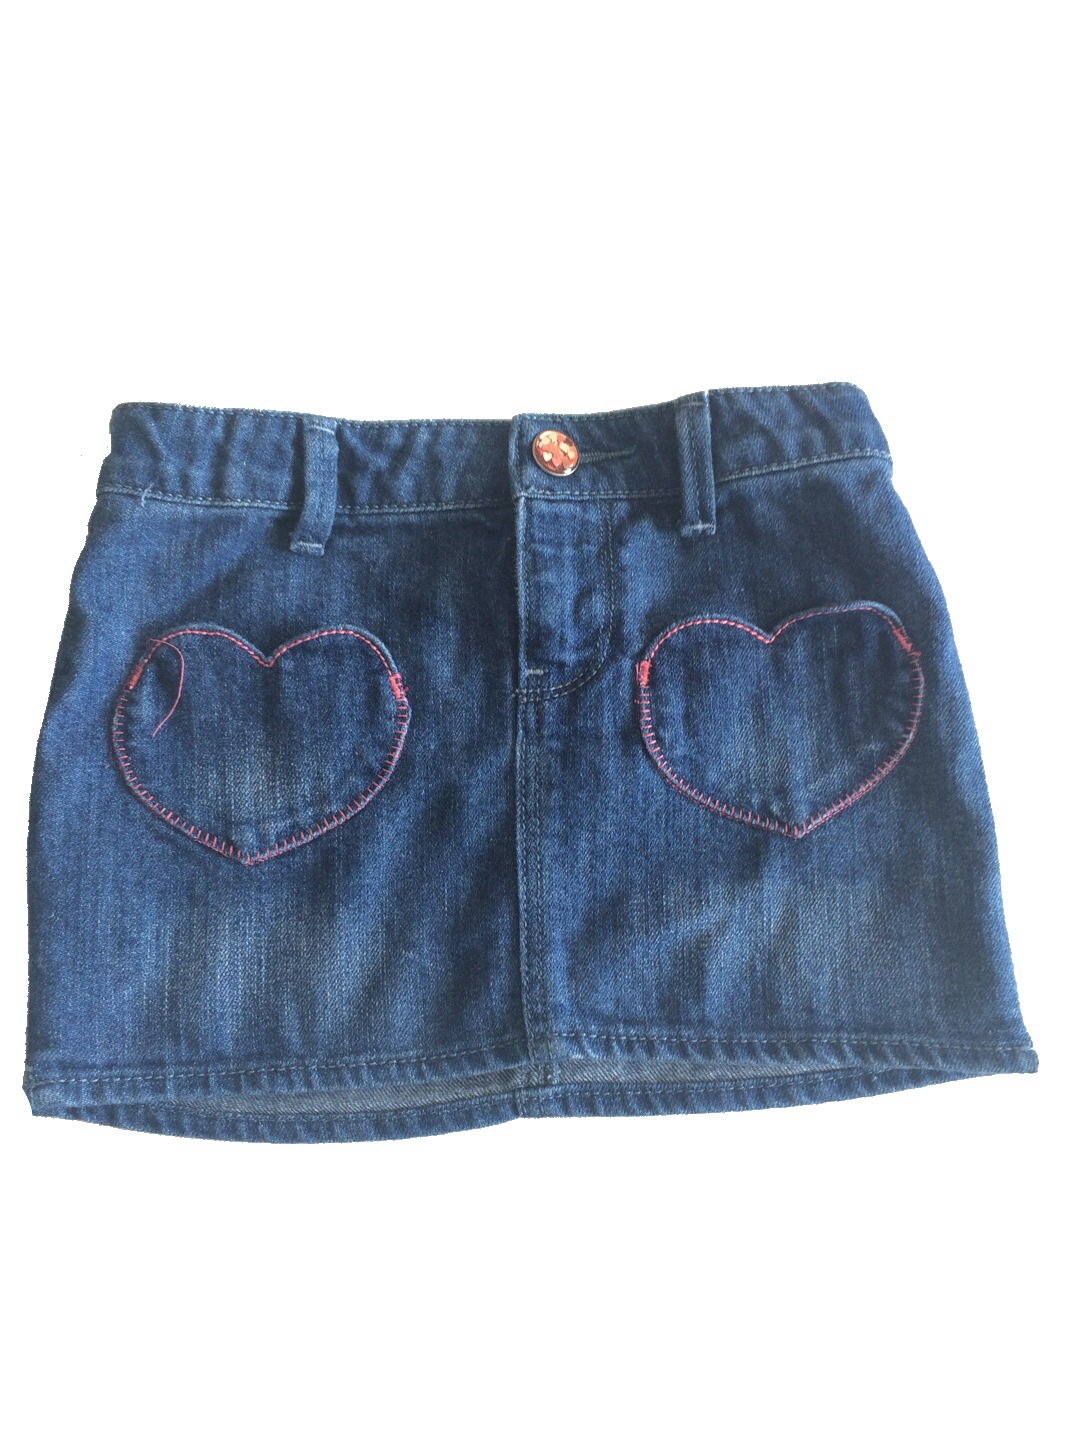 edgy meet preppy size 4 baby gap pocket denim